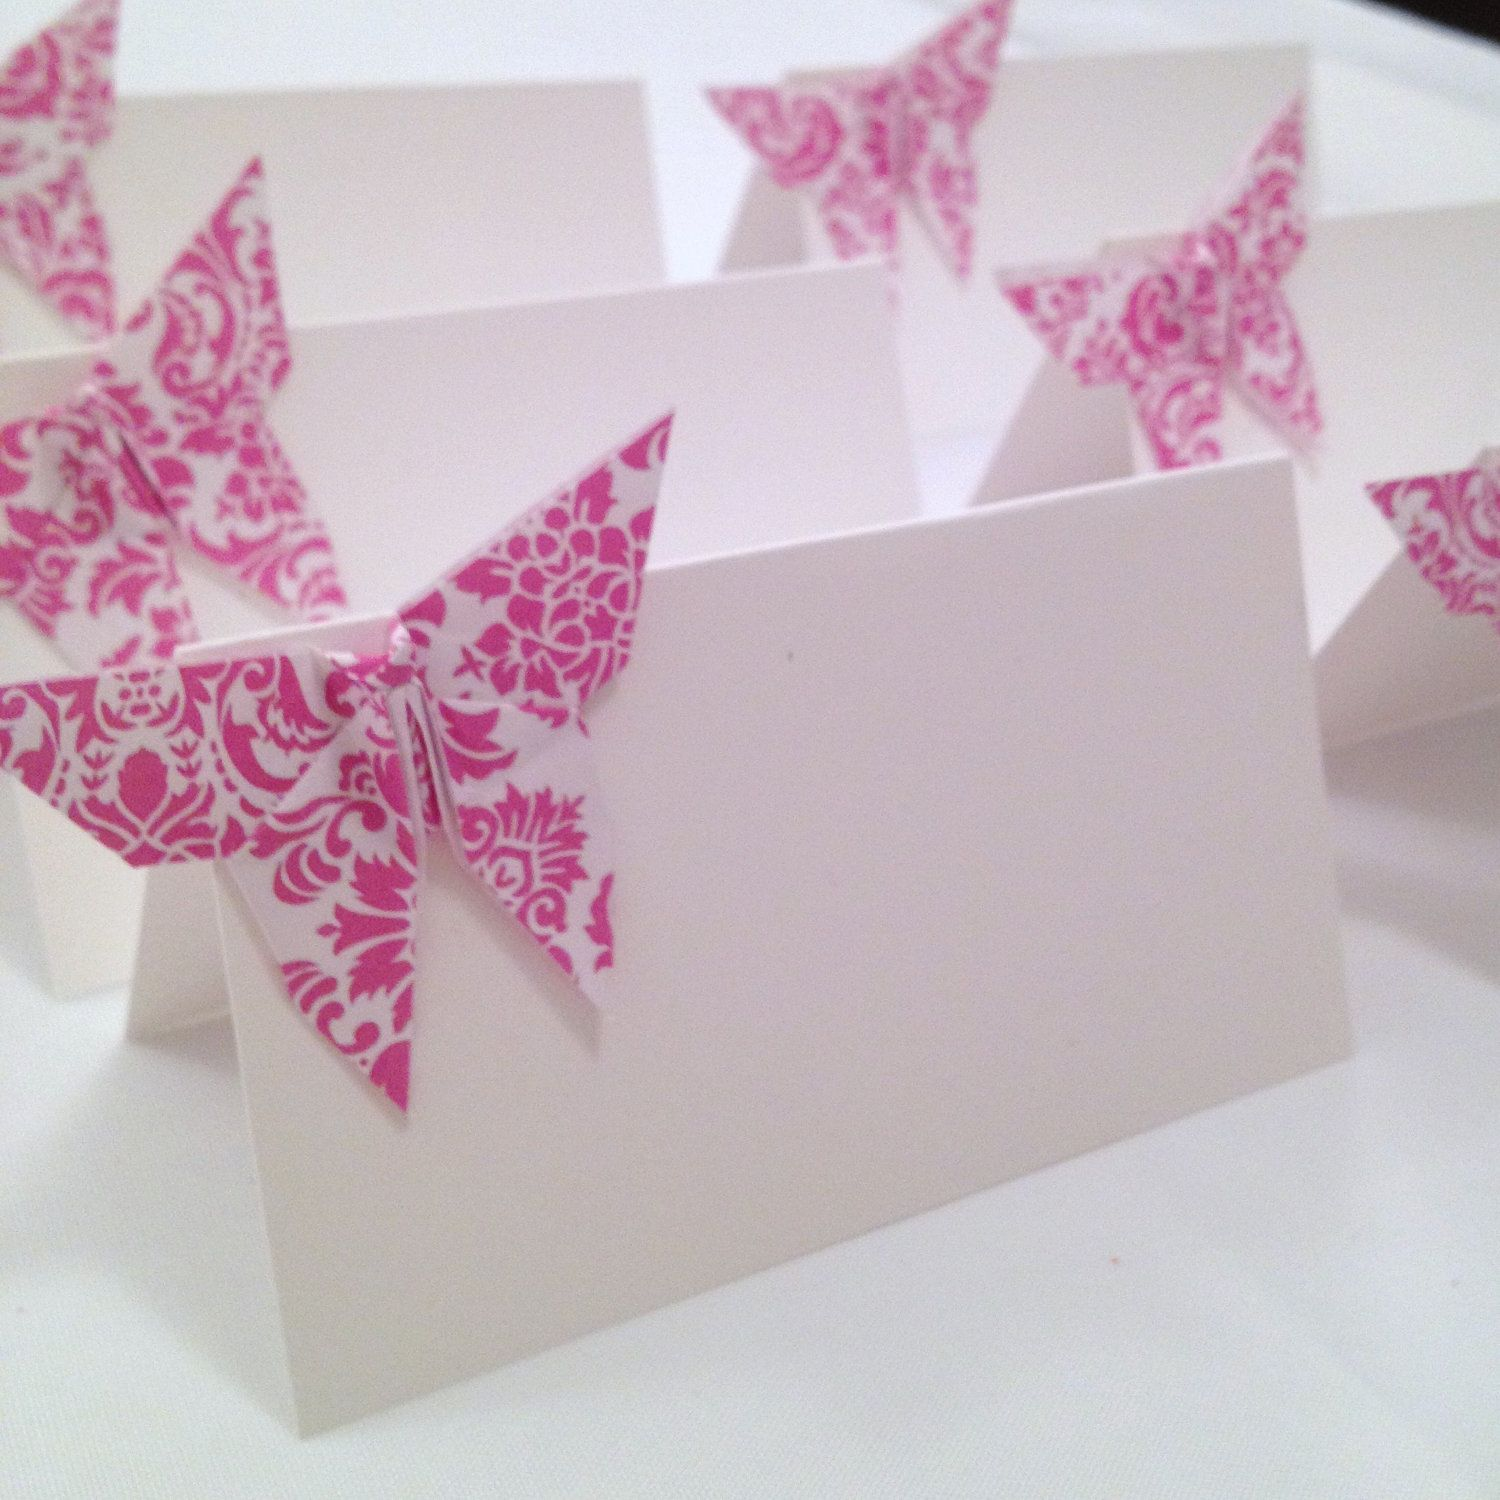 Origami butterfly place cards wedding escort cards favor sets origami butterfly place cards wedding escort cards favor sets of 20 damask print jeuxipadfo Choice Image